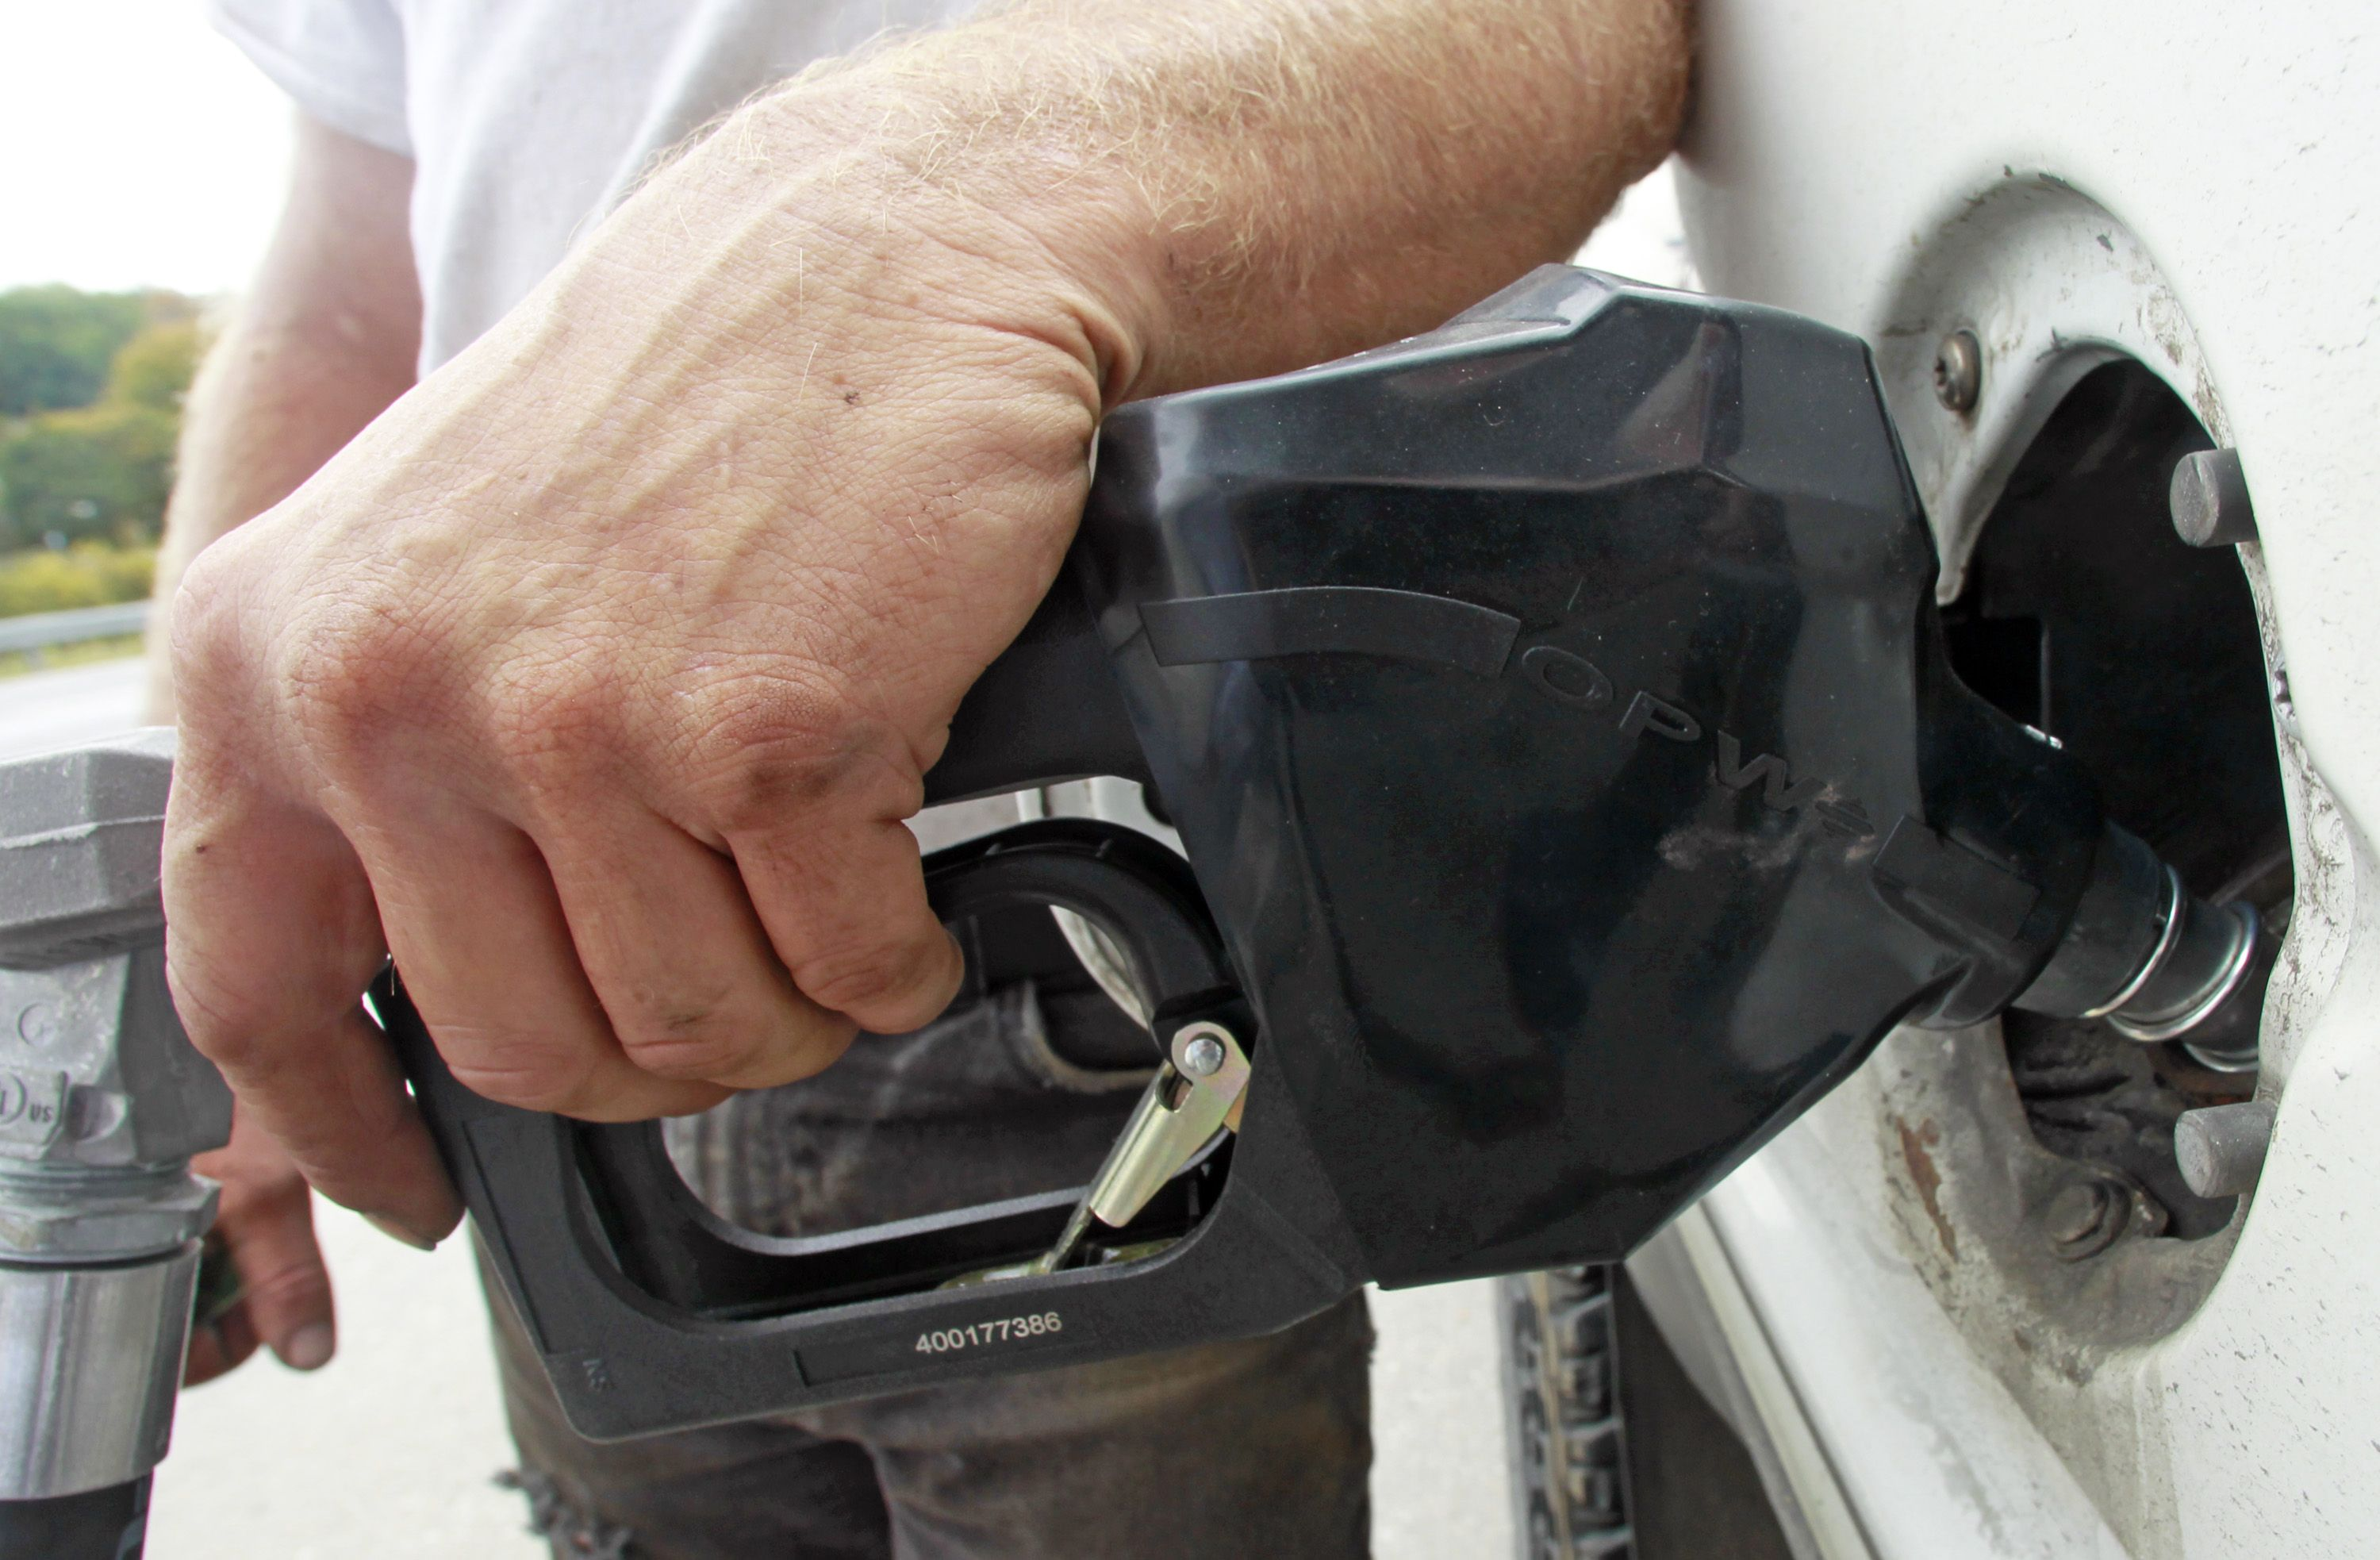 Crude oil prices renew a slide that has yet to bottom - http://www.baindaily.com/crude-oil-prices-renew-a-slide-that-has-yet-to-bottom/